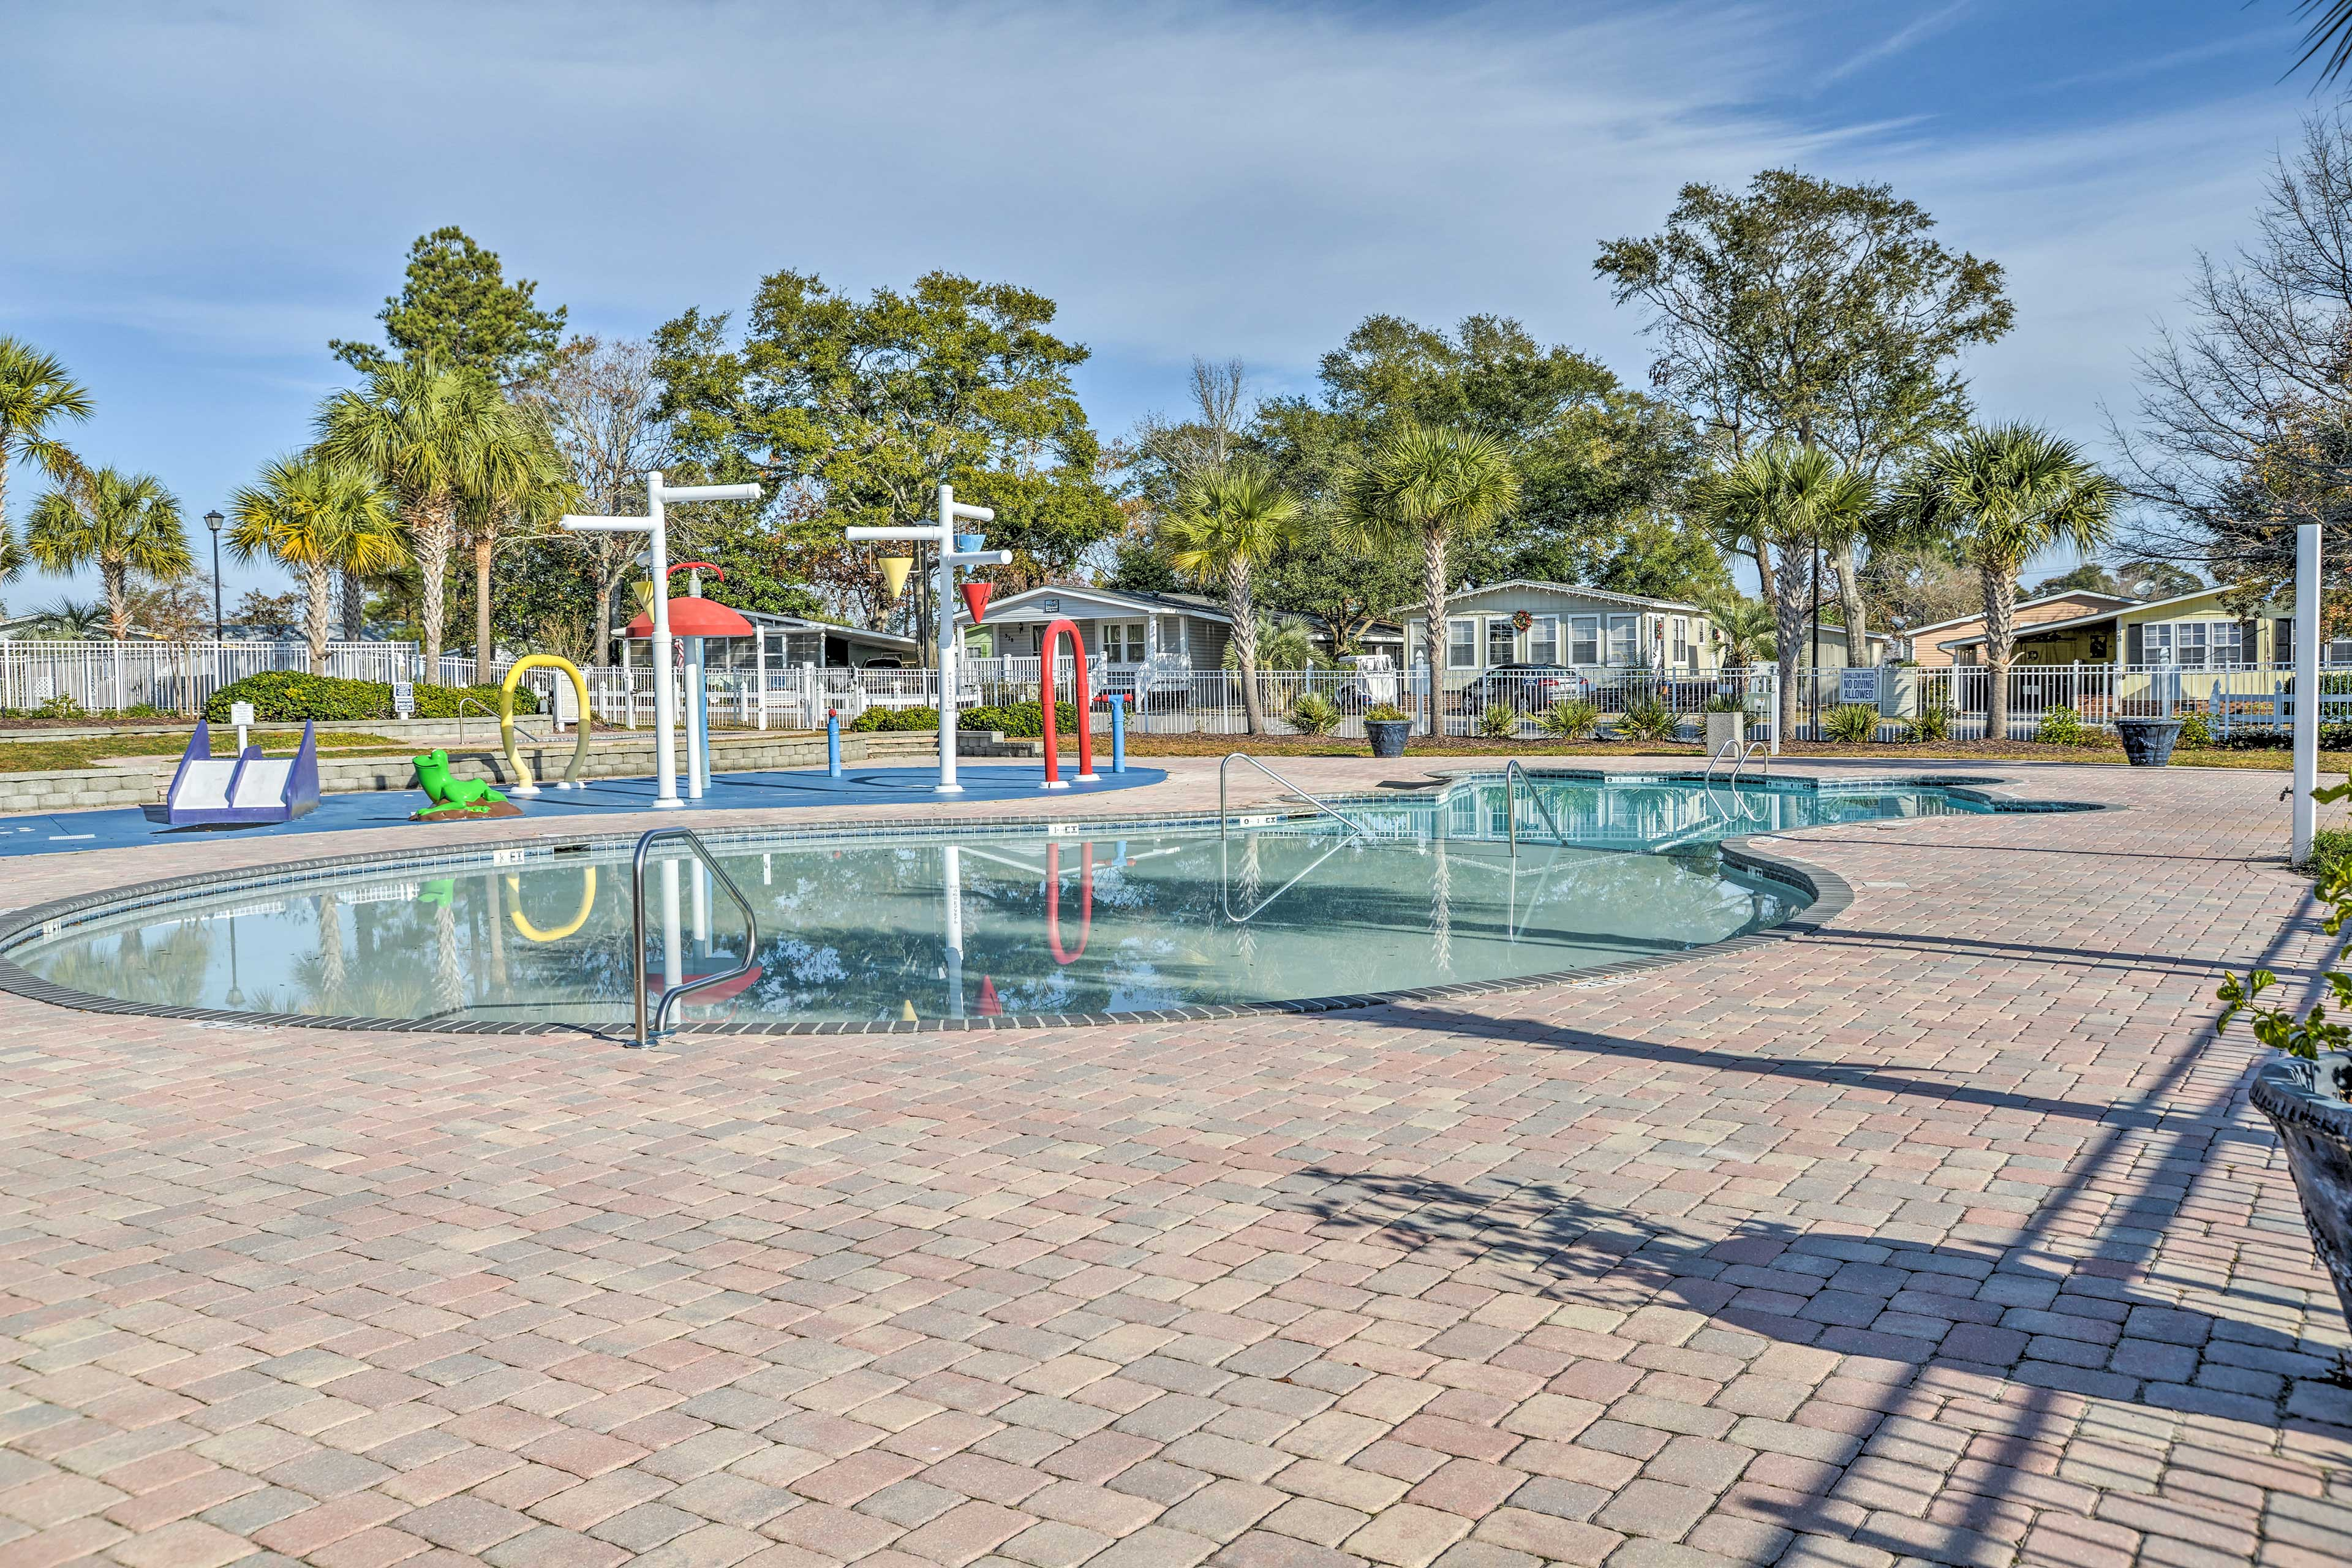 When you're in the mood for water, take a swim in one of the 3 on-site pools.